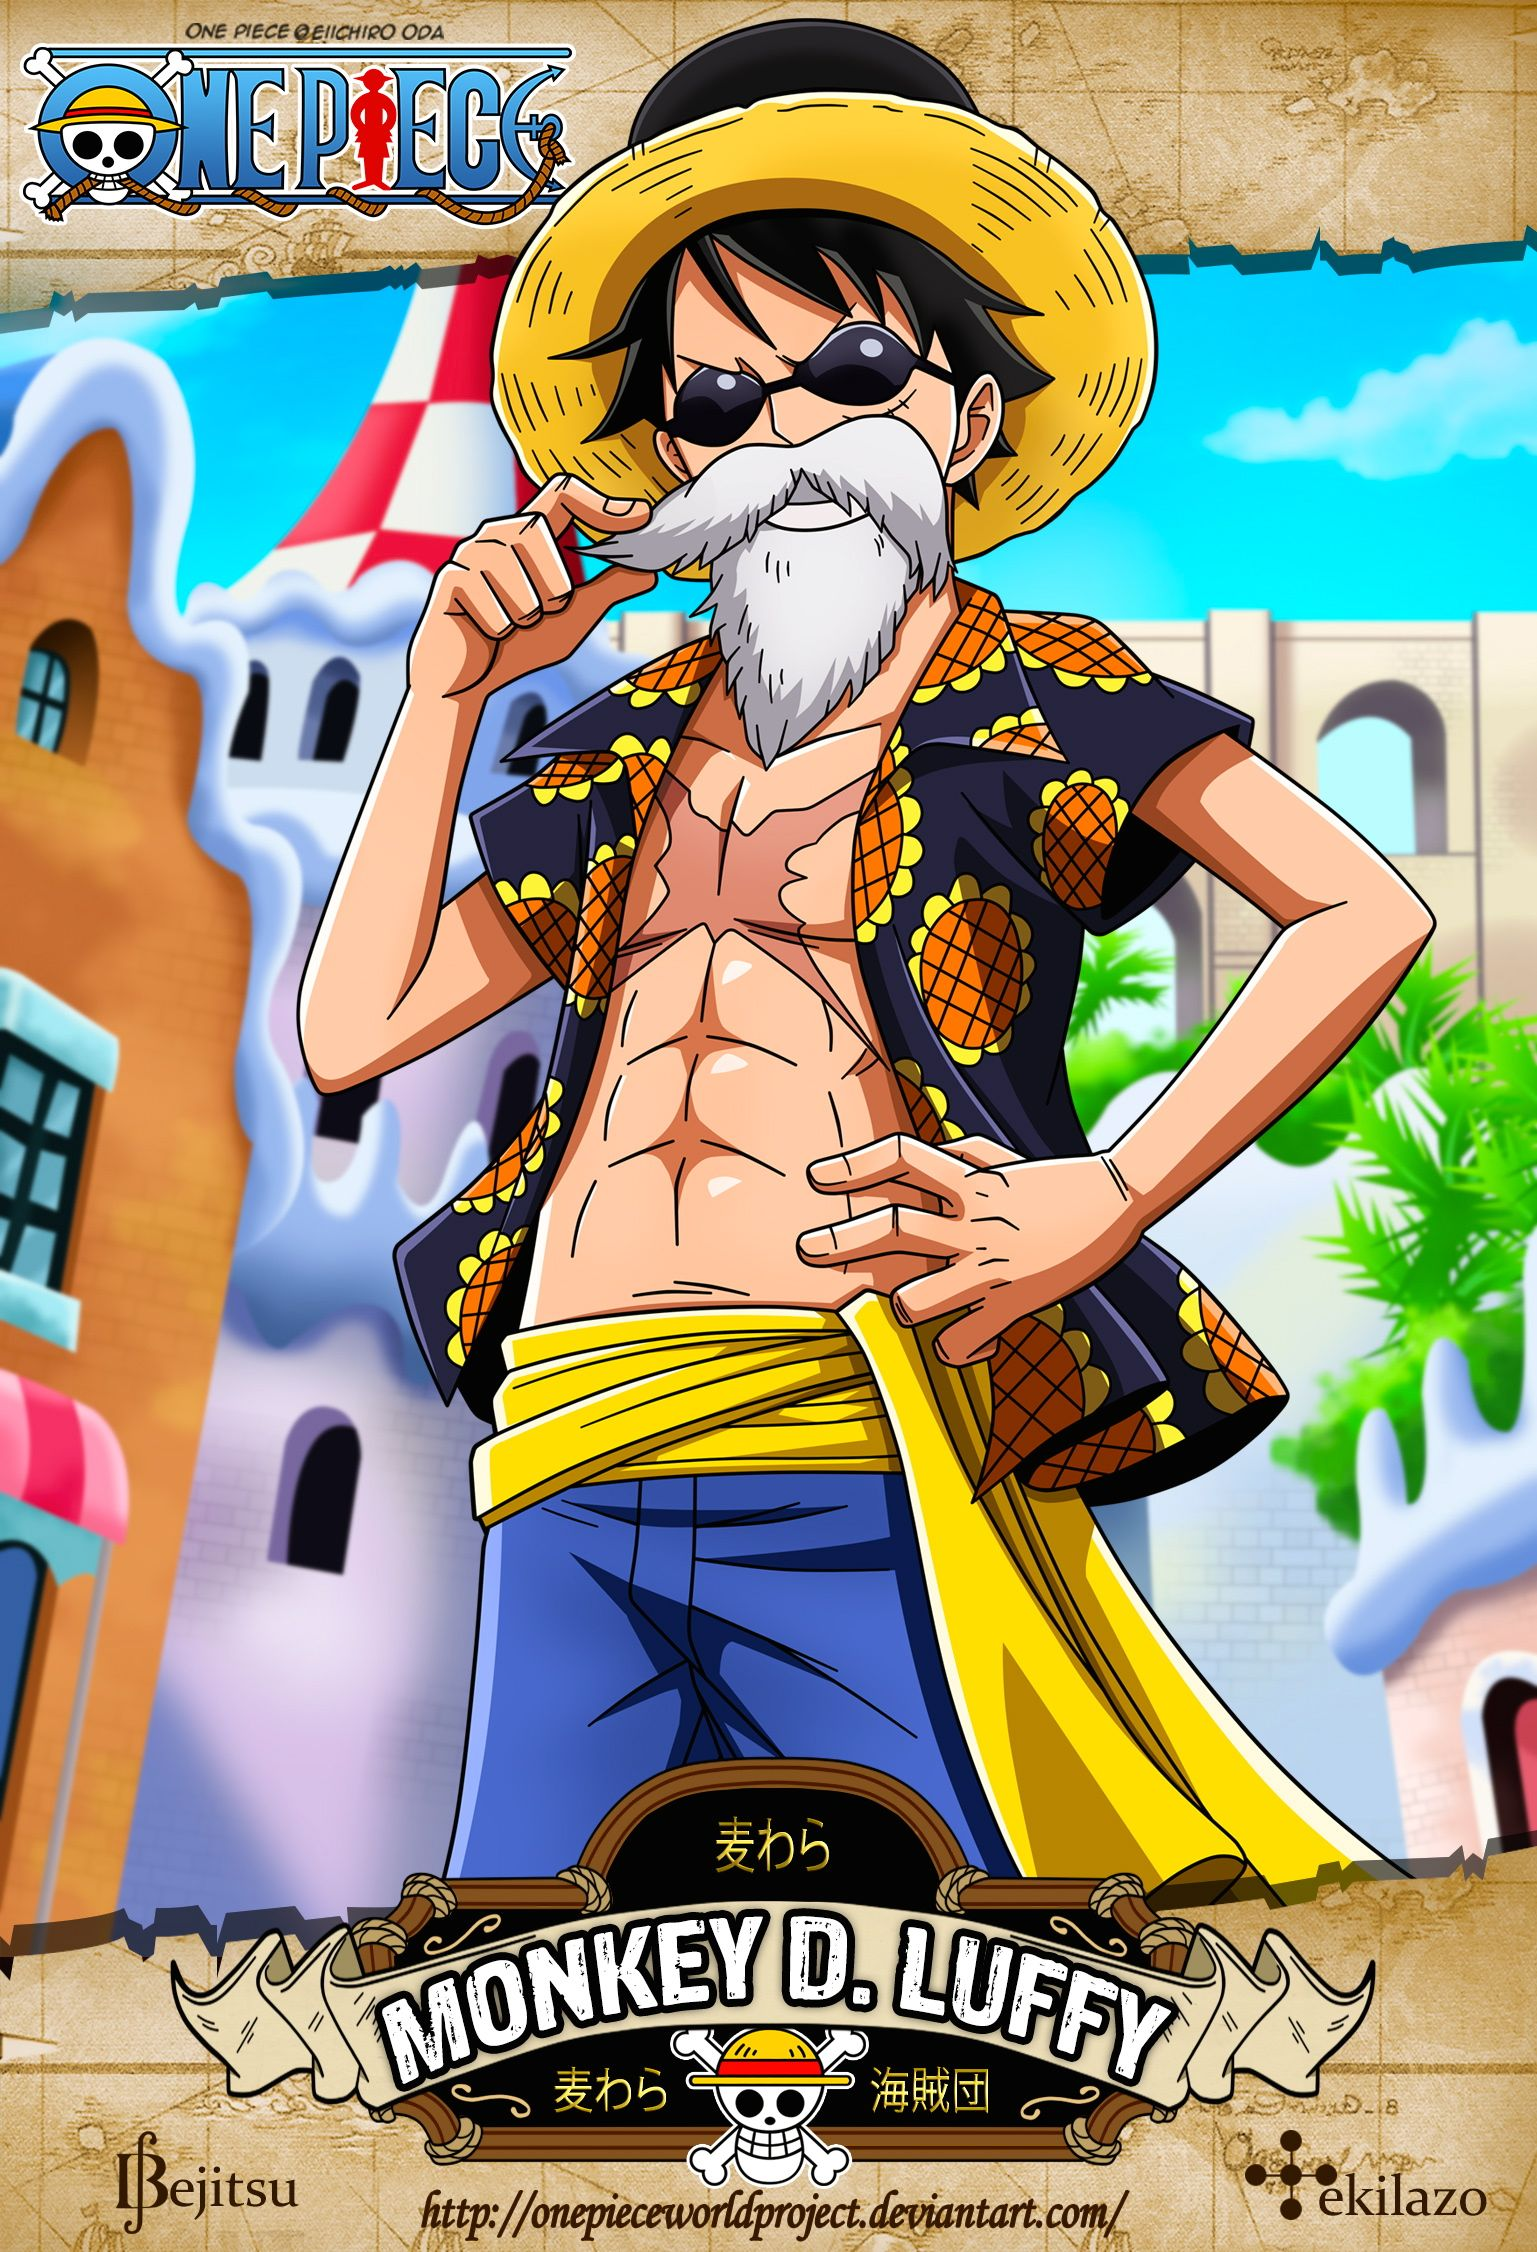 Monkey D Luffy Dressrosa Monkey D Luffy One Piece Luffy One Piece